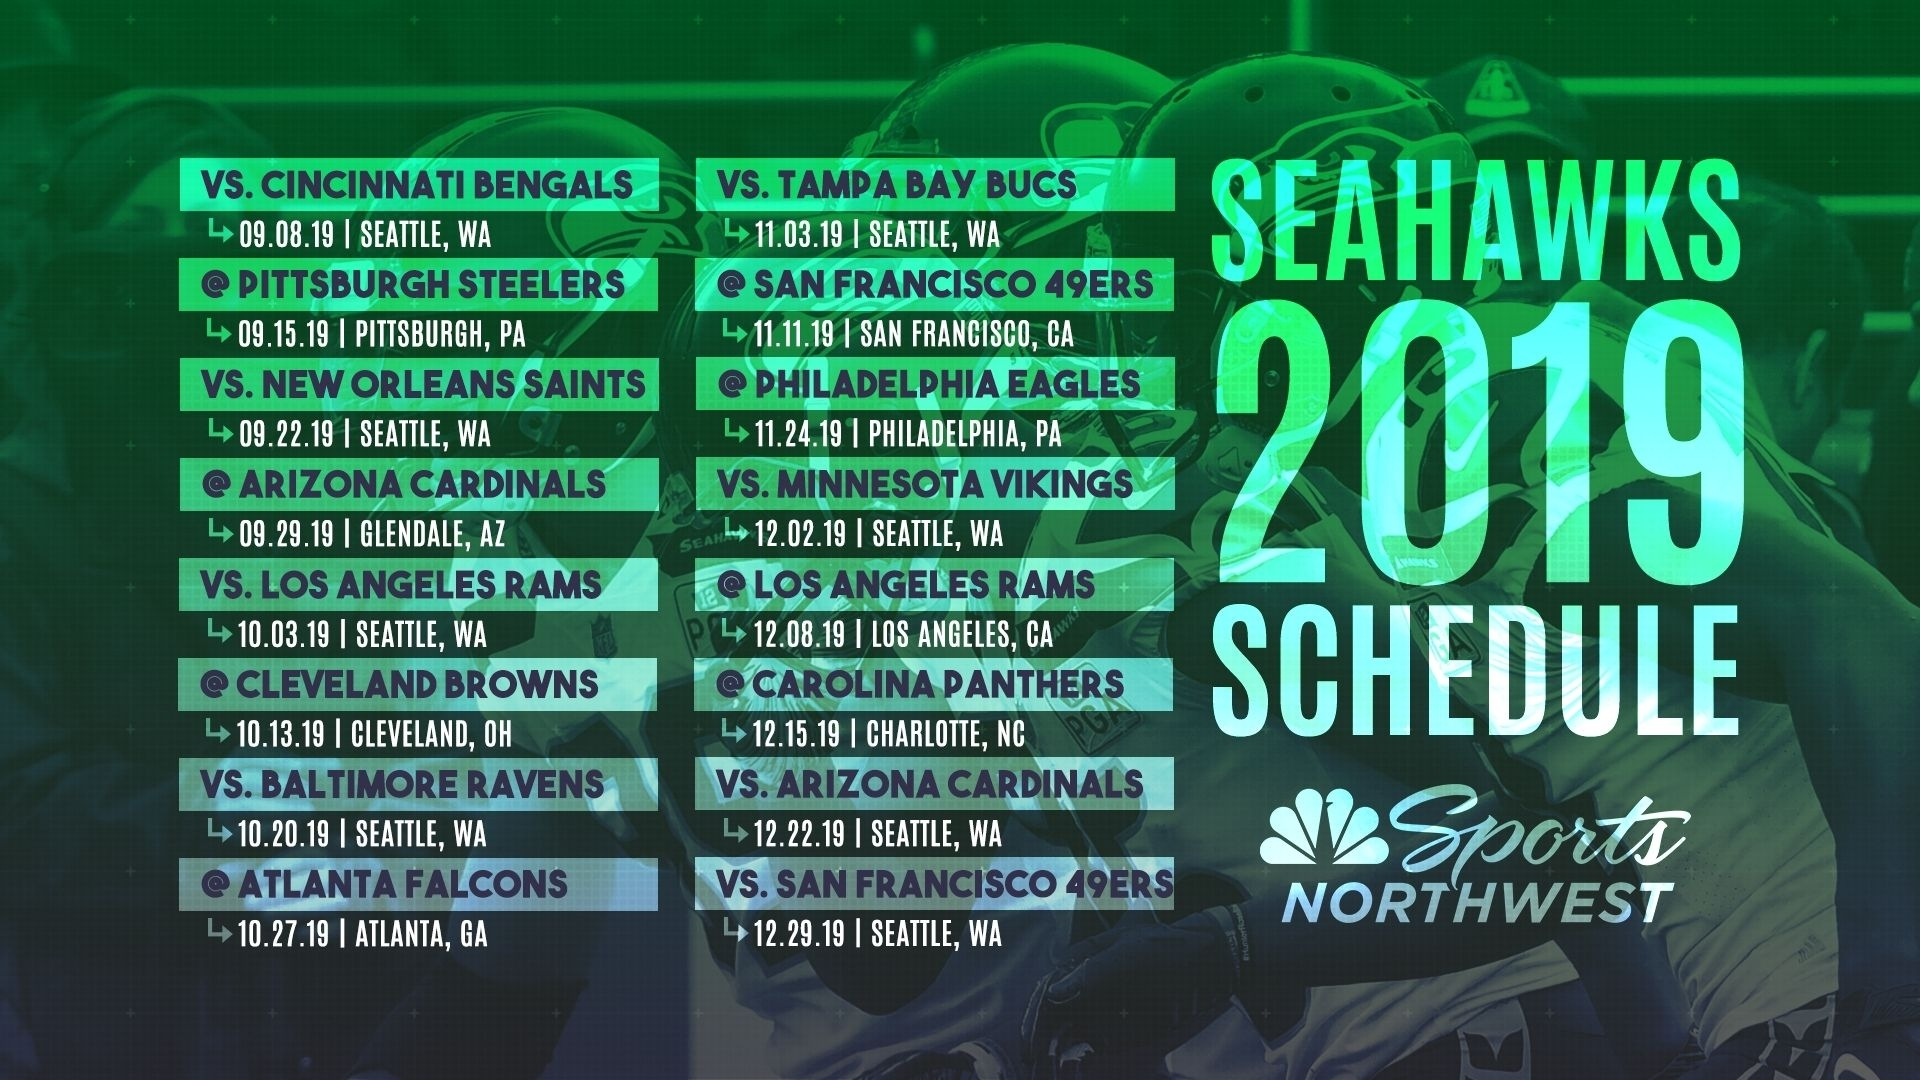 2019 - 2020 Nfl Schedule Printable In 2020 | Schedule intended for Printable 2019 2020 Nfl Schedule